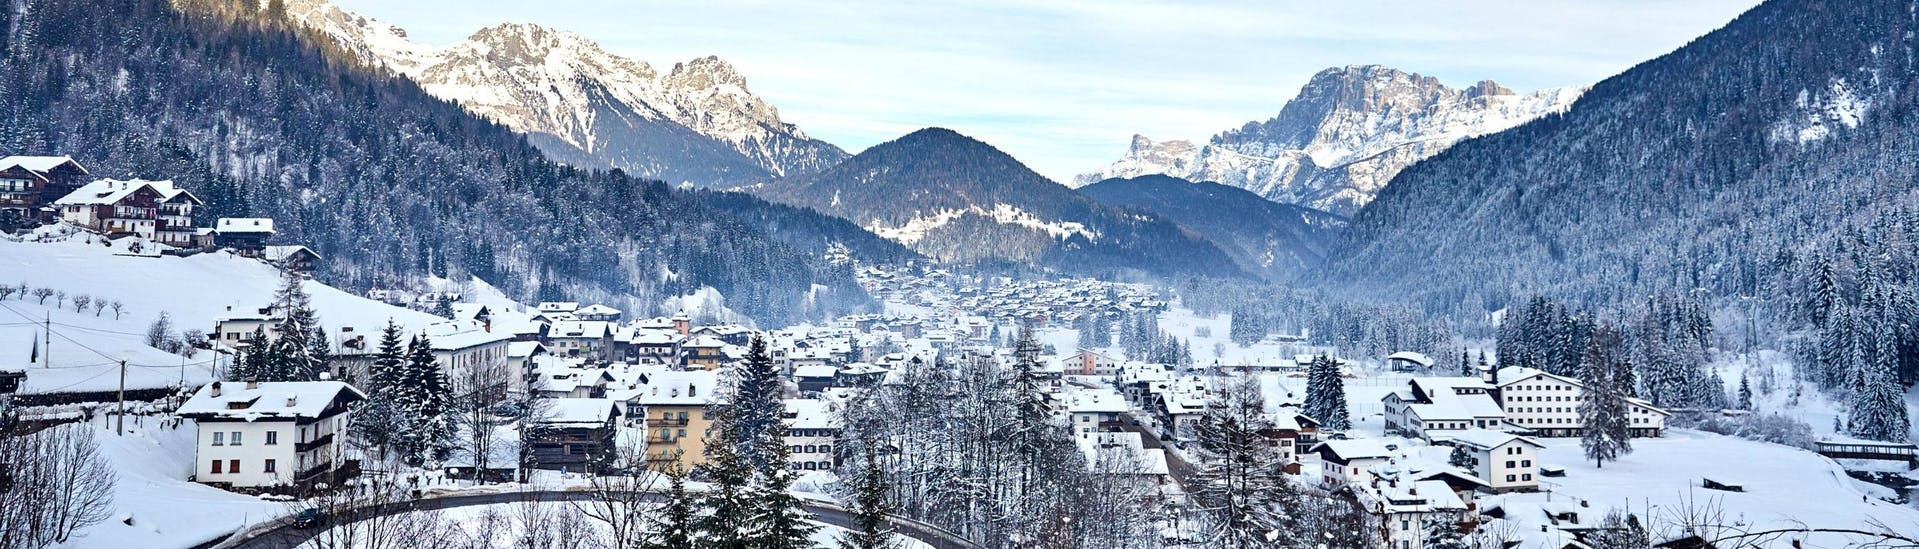 An image of Falcade, a picturesque Italian village nestled between the mountains, where aspiring skiers can book ski lessons with one of the local ski schools.